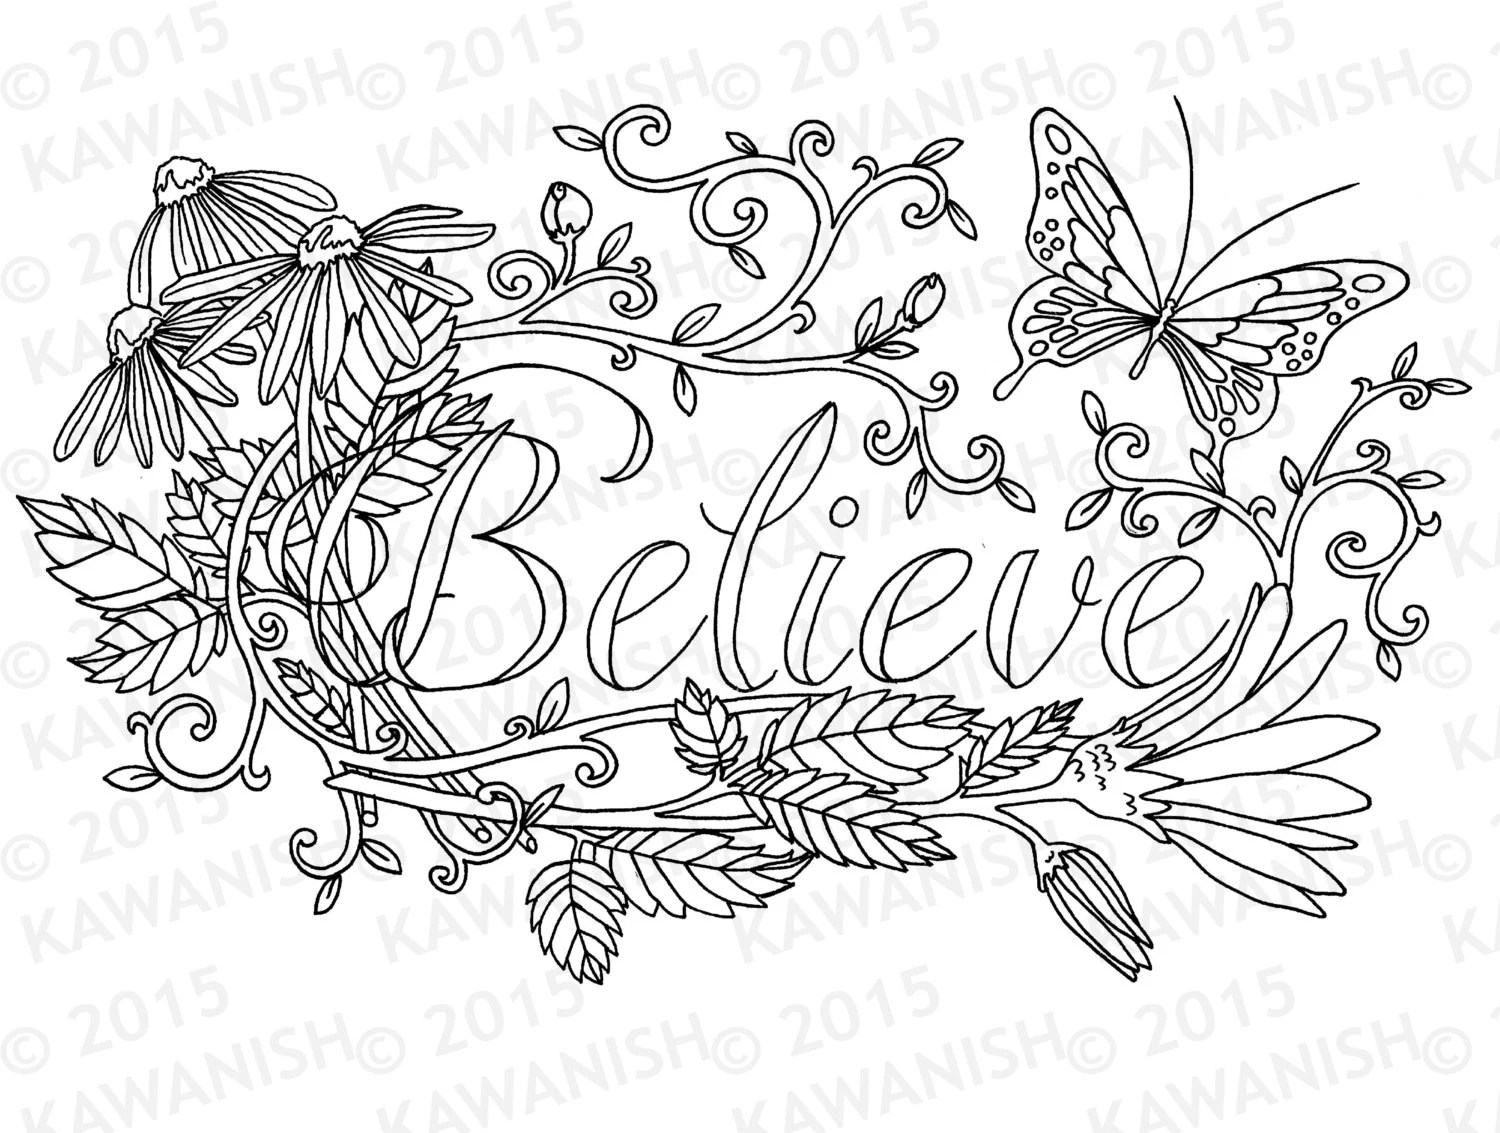 Believe flower inspirational adult coloring page gift wall art